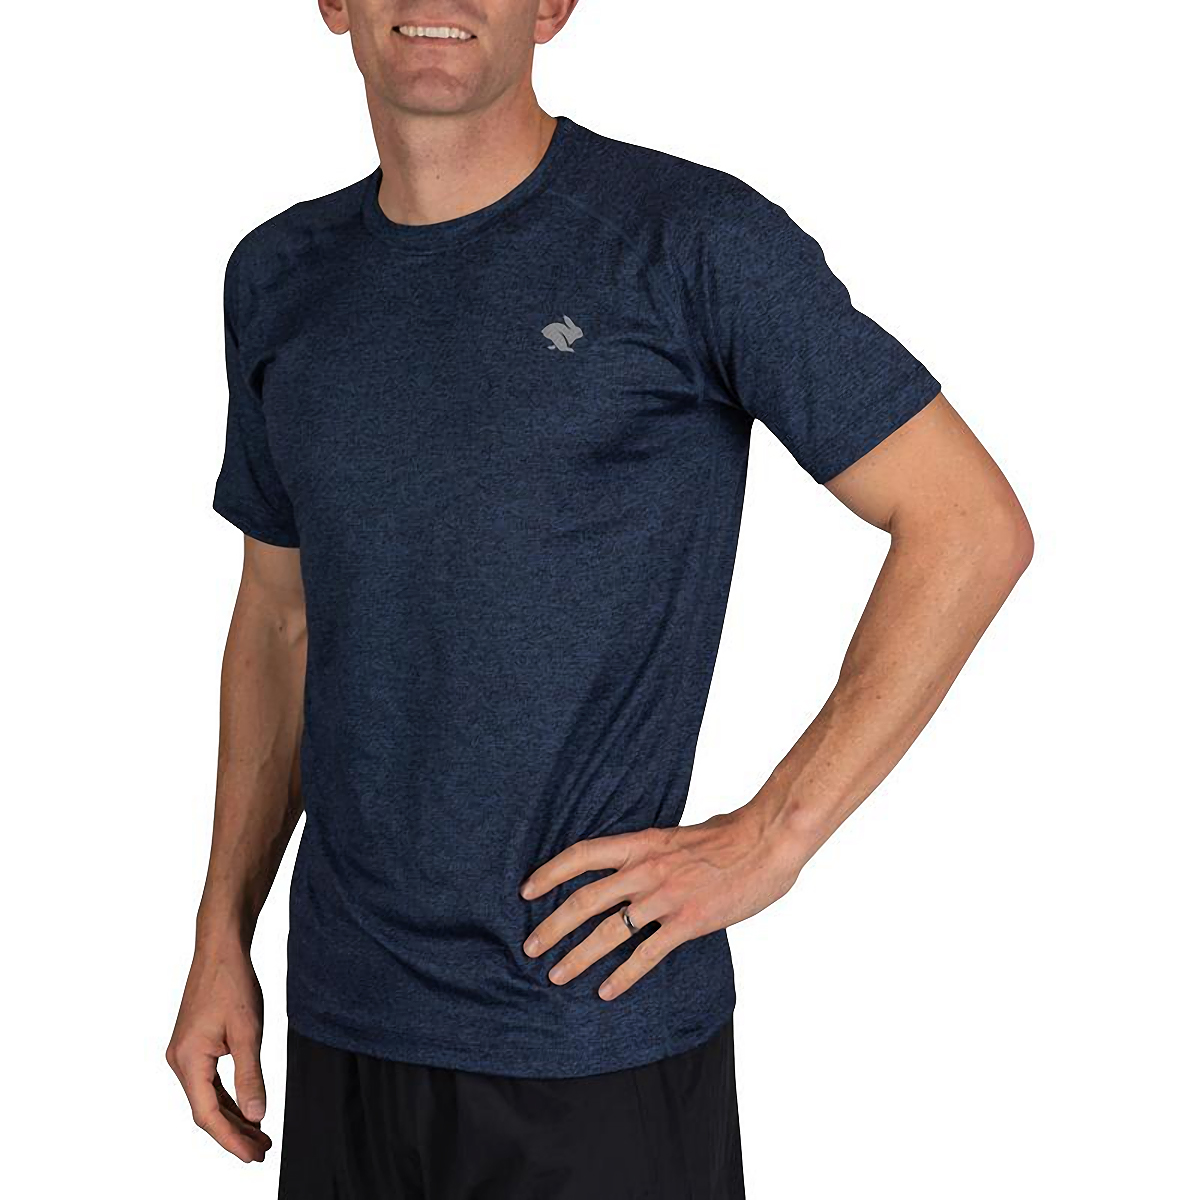 Men's Rabbit EZ Short Sleeve Tee - Color: Eclipse Heather - Size: XS, Eclipse Heather, large, image 2